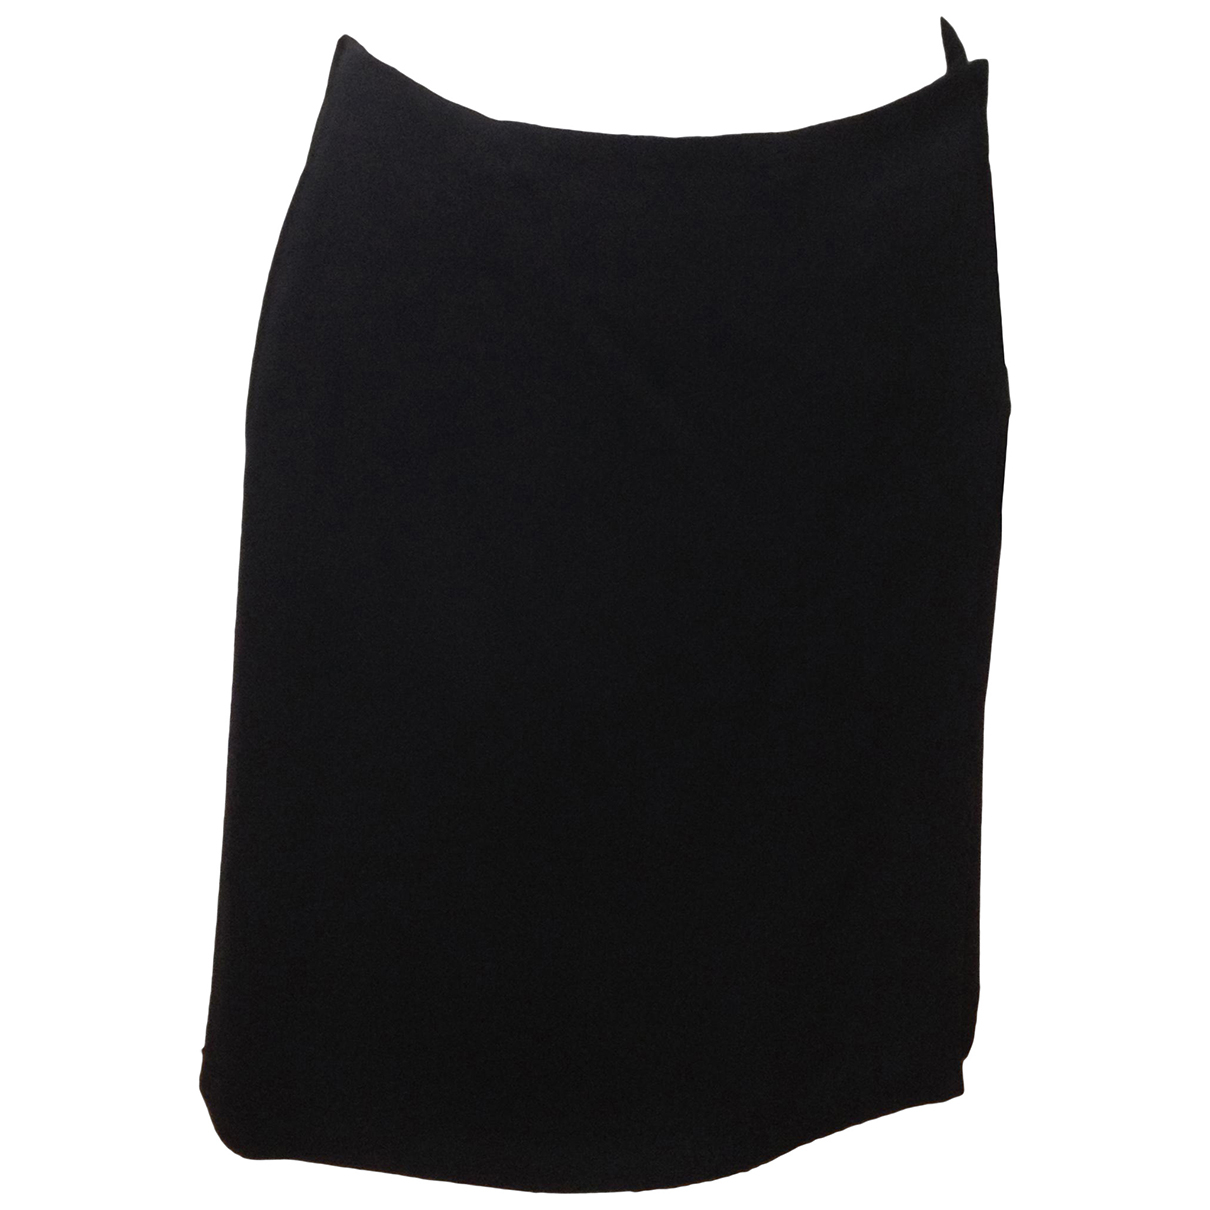 Prada N Black skirt for Women 42 IT